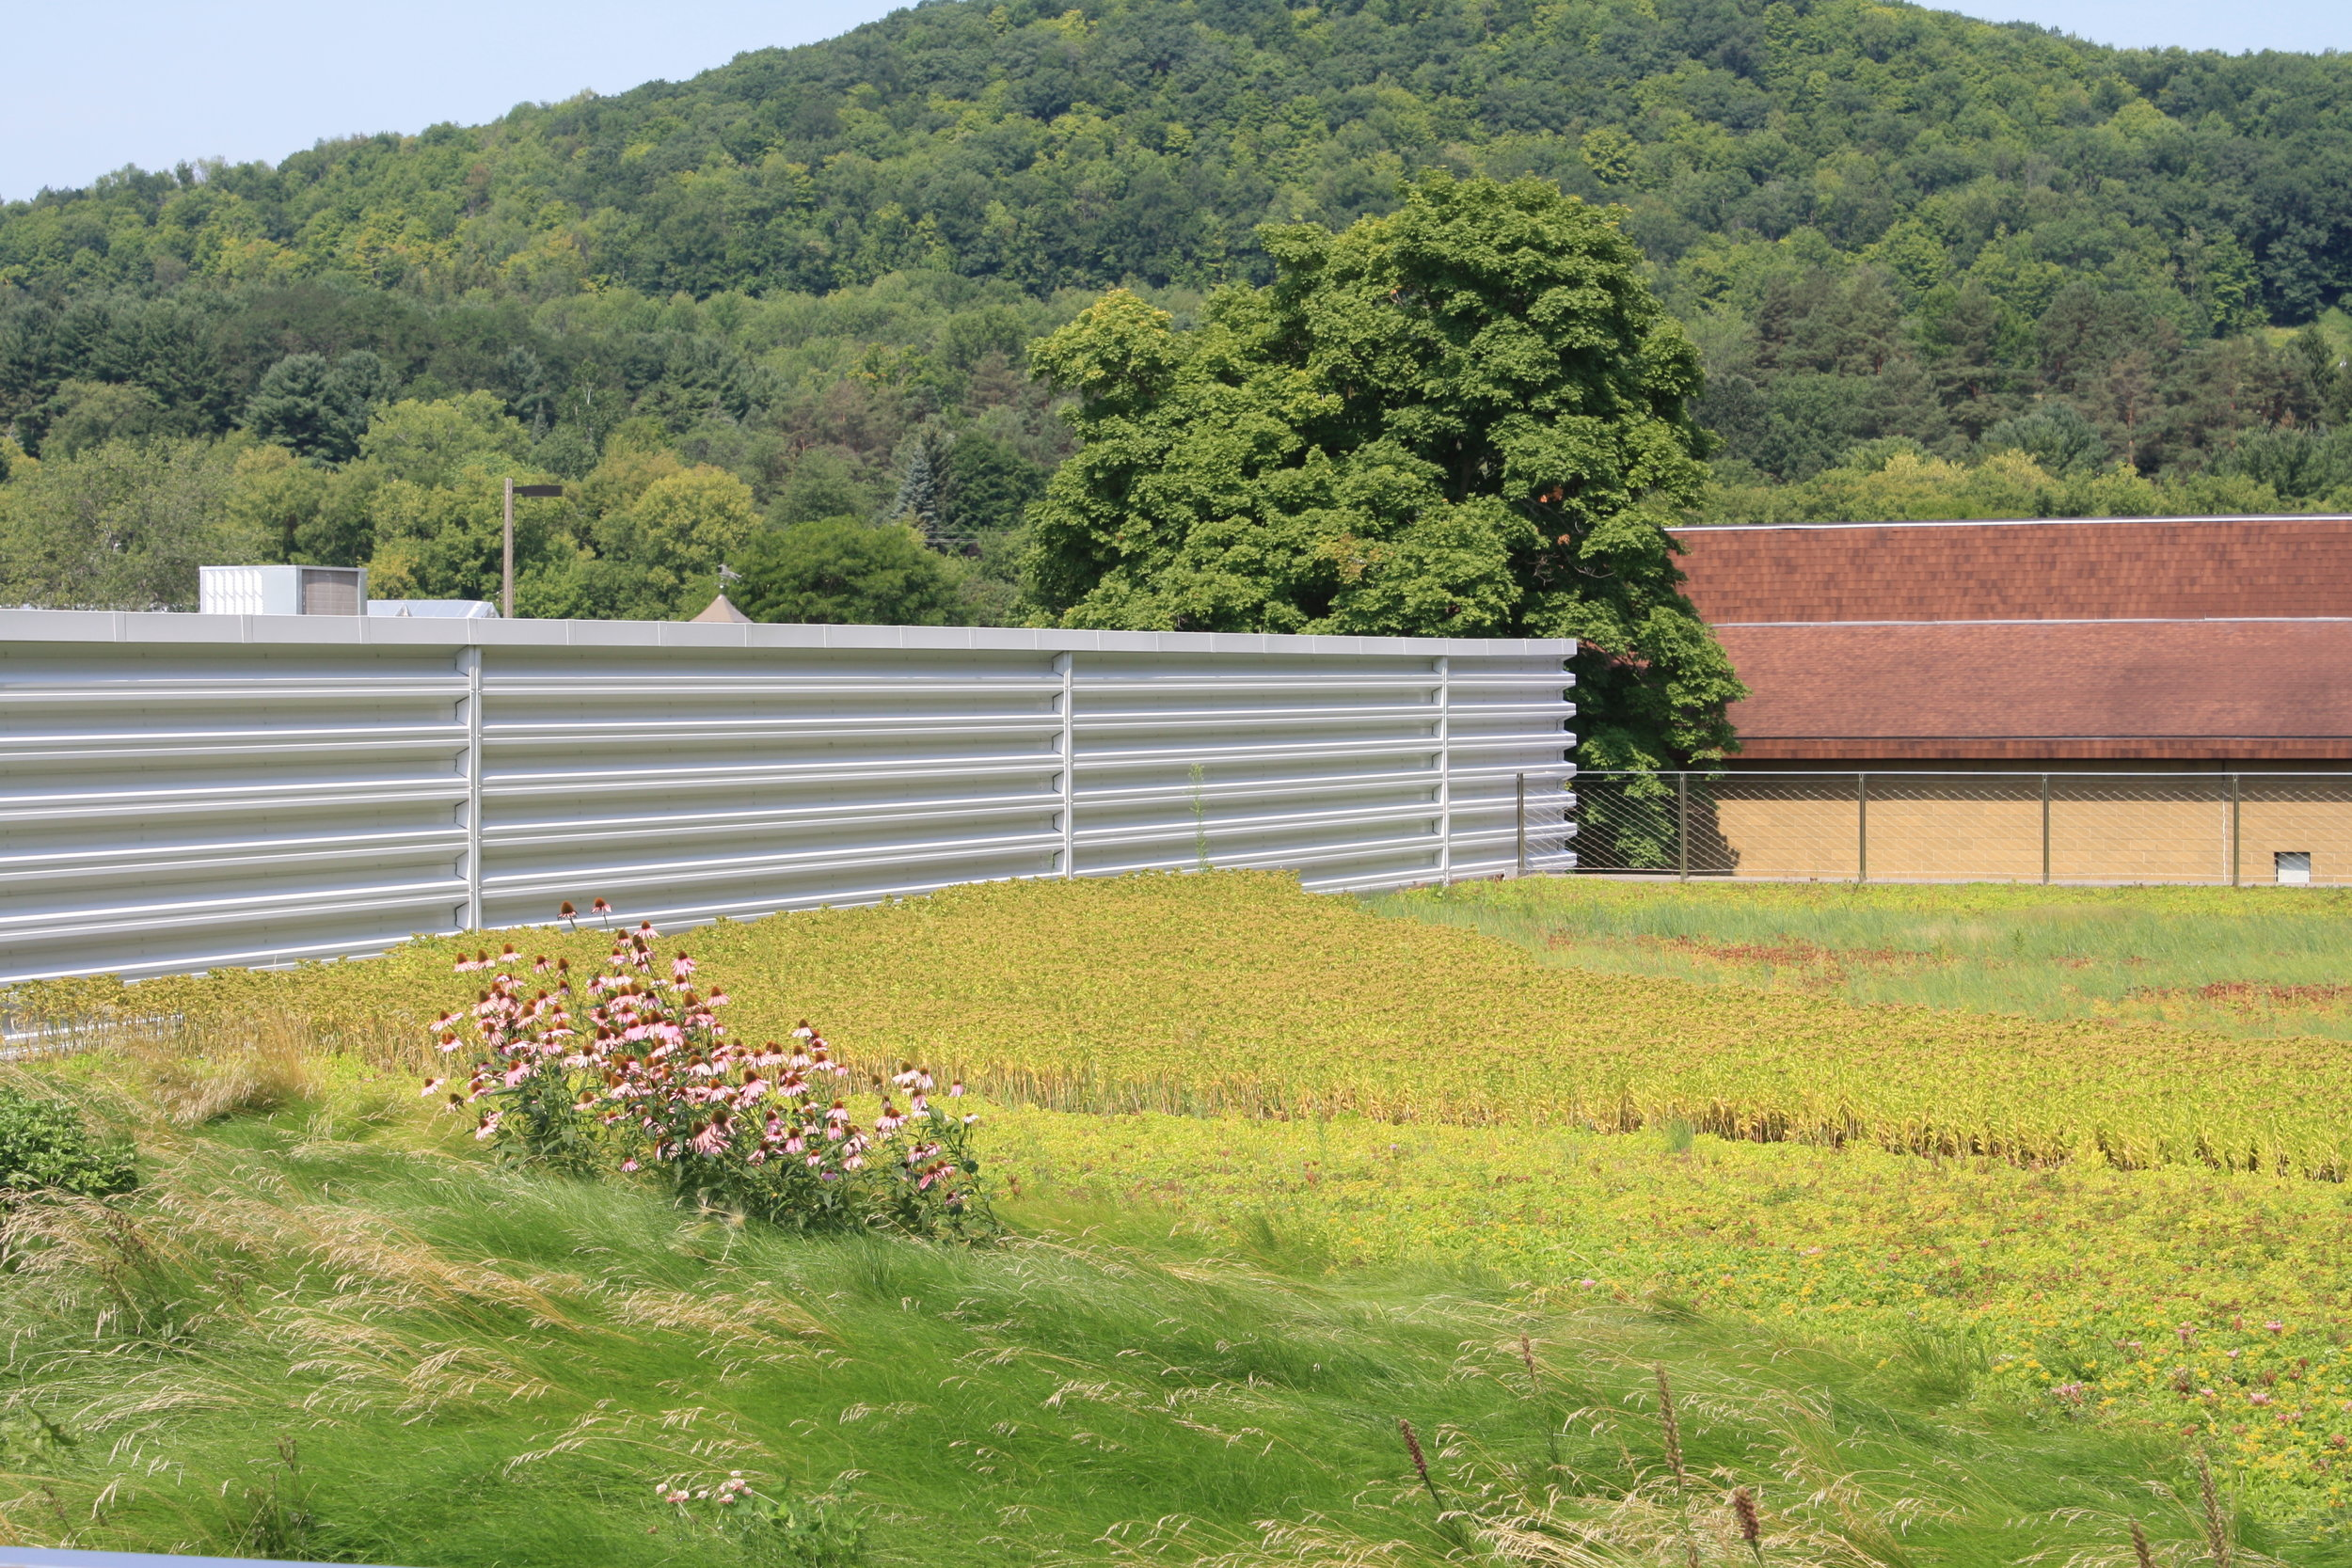 recover-green-roofs-SUNY-cobleskill-2014-27.JPG